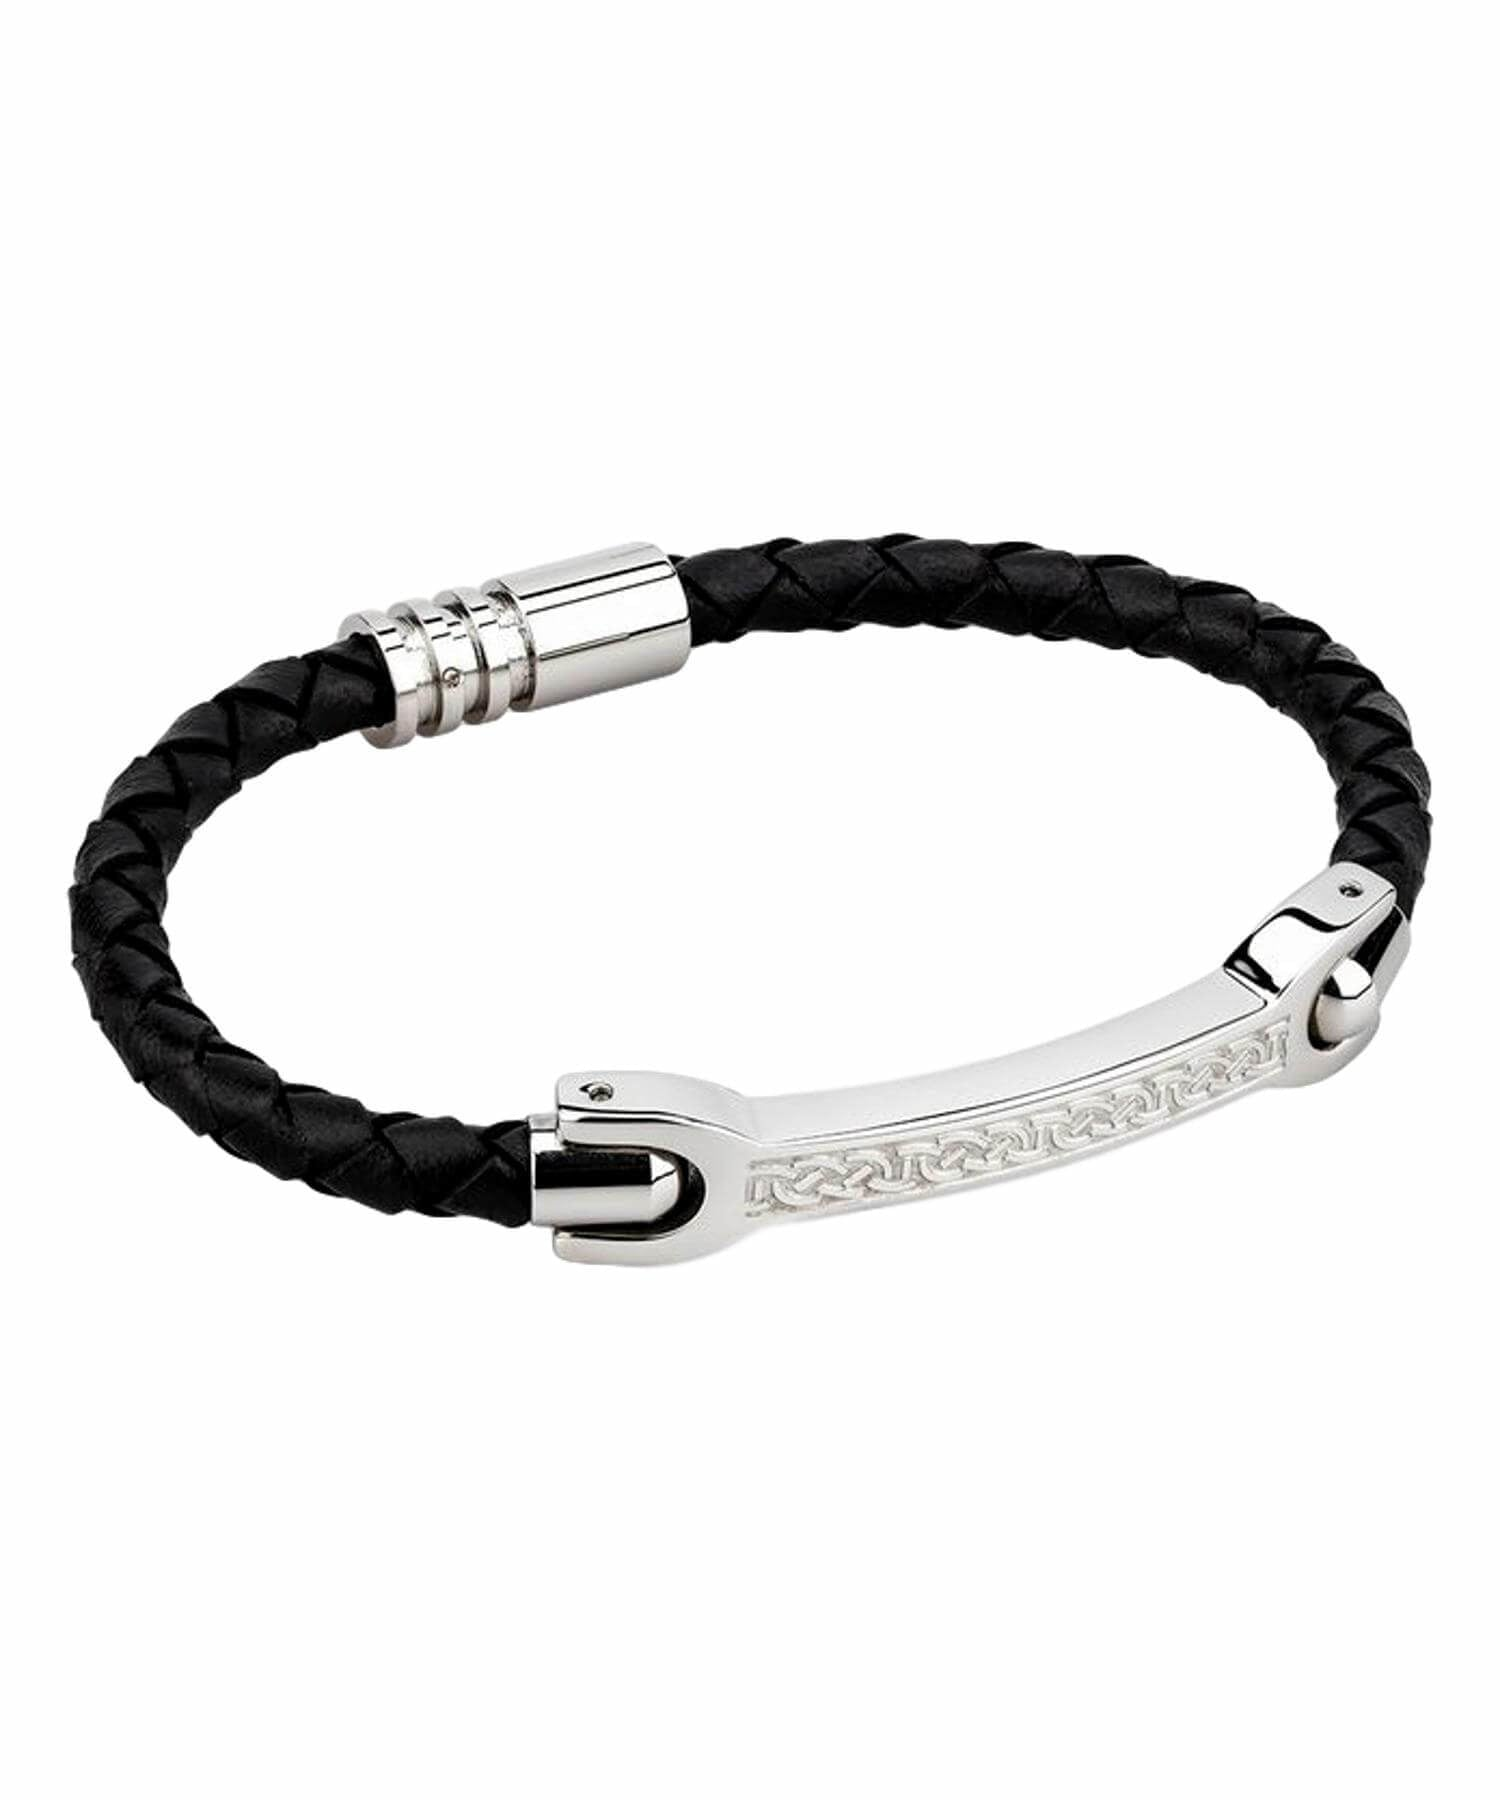 Steel Bracelet - Black Leather Solvar Celtic Jewellery